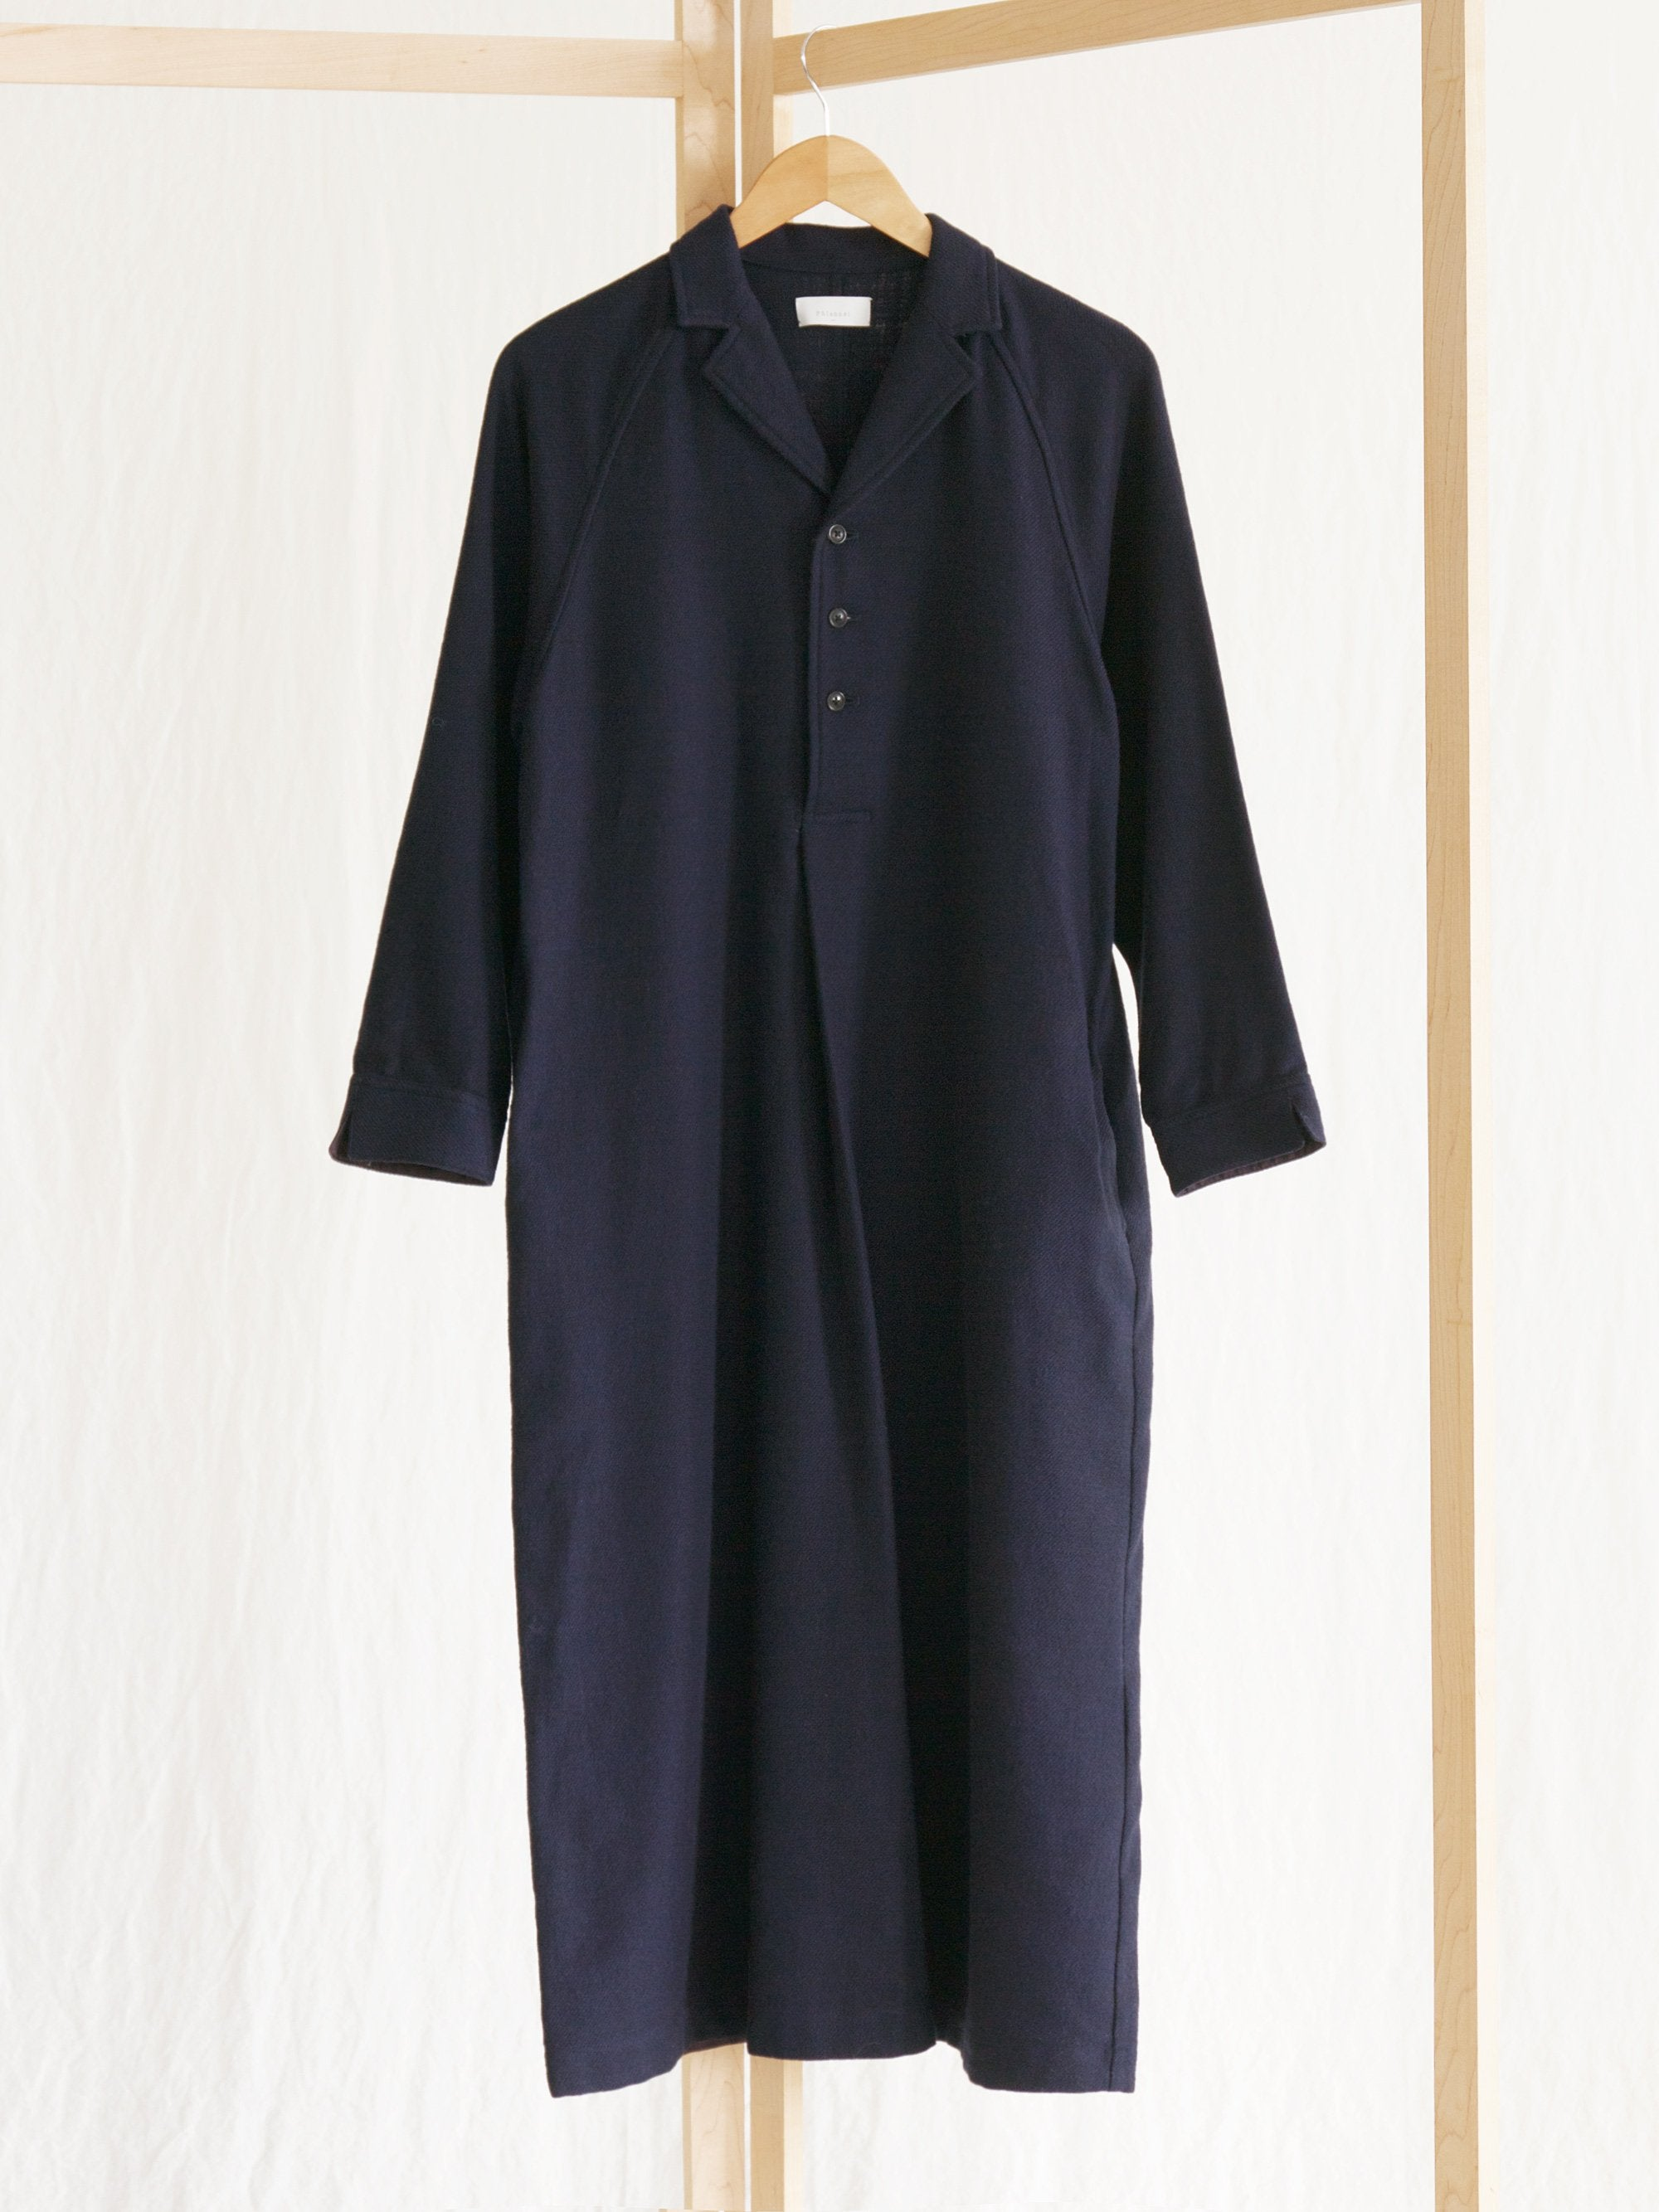 Namu Shop - Phlannel Cotton Flannel Open Collared Dress